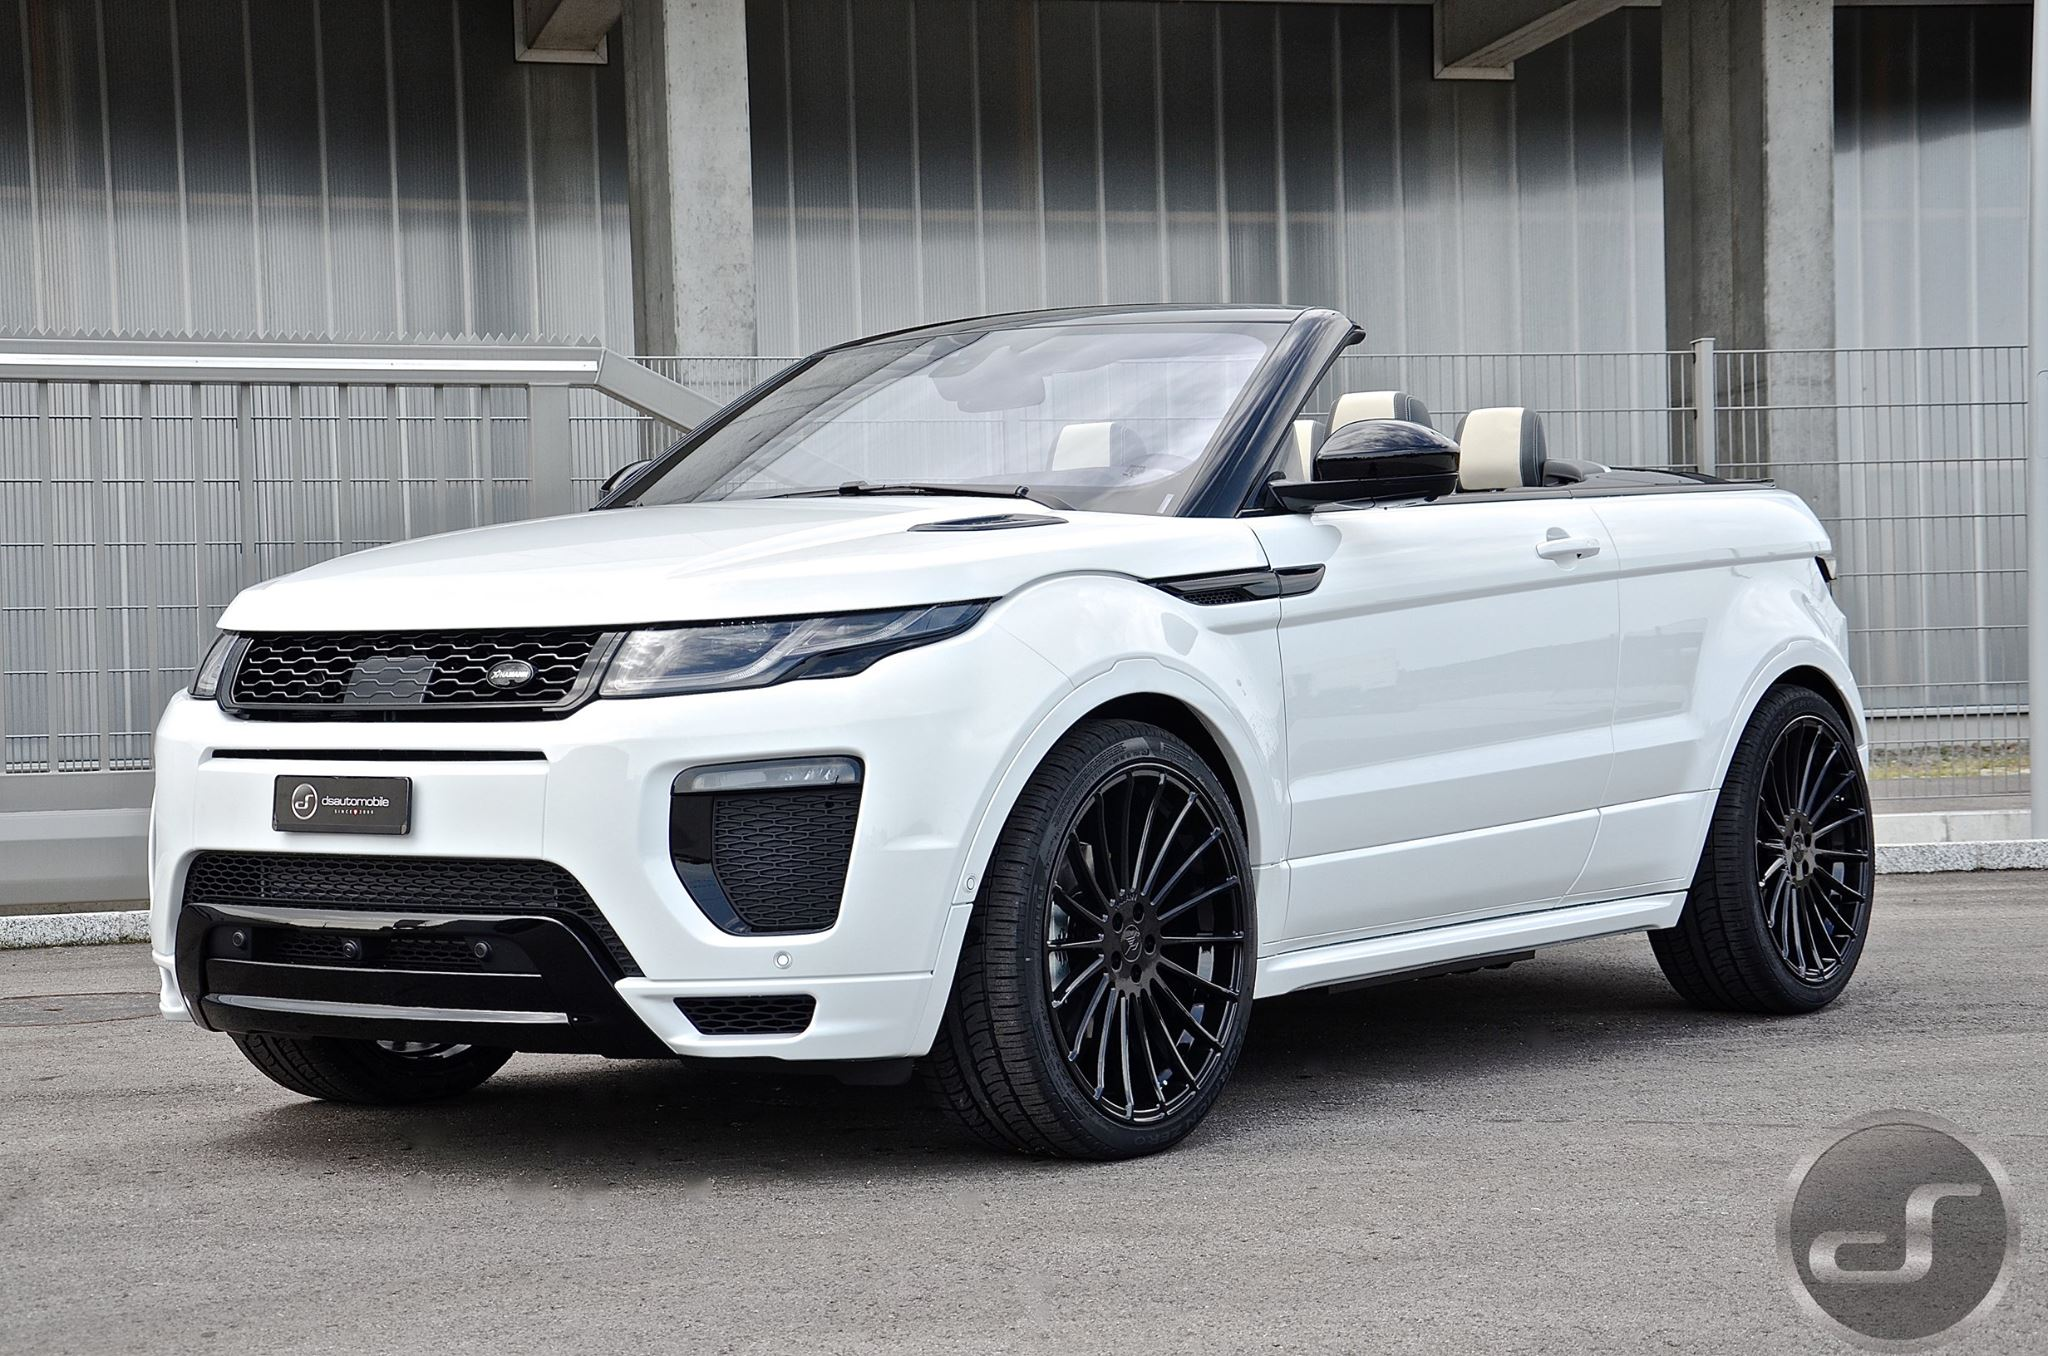 2016 hamann range rover evoque cabriolet dark cars wallpapers. Black Bedroom Furniture Sets. Home Design Ideas